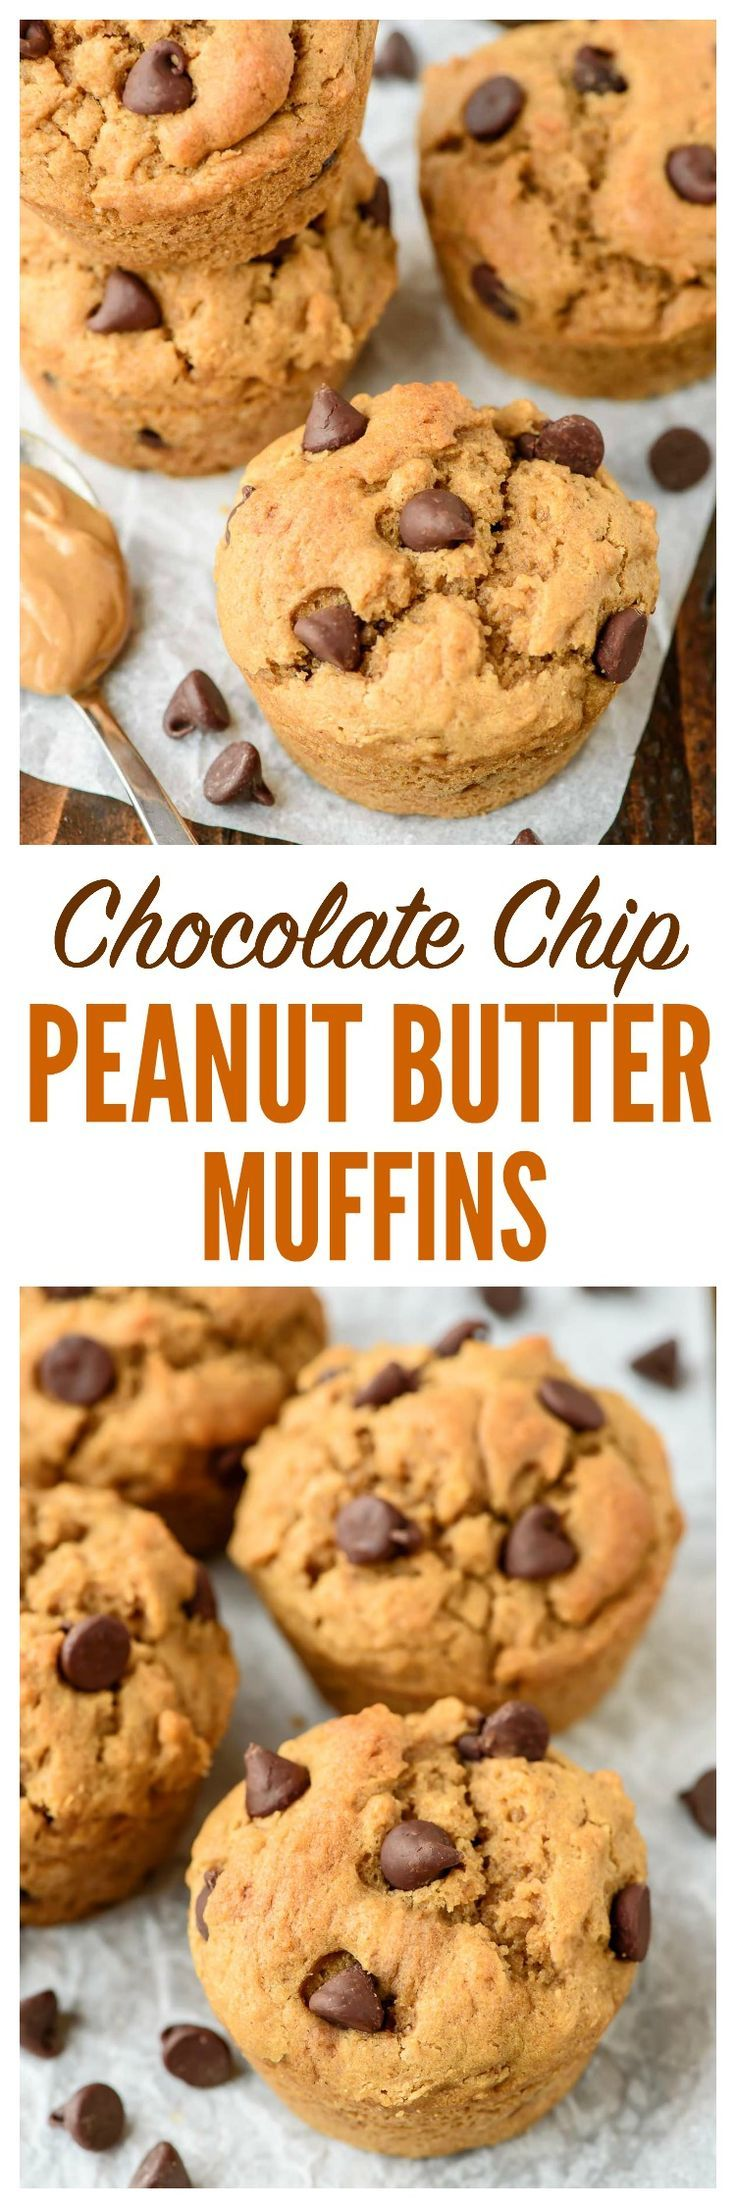 Moist and fluffy Peanut Butter Muffins with Chocolate Chips. Whole wheat with 7+ grams of protein, these make a filling, healthy breakfast or after school snack! www.wellplated.com